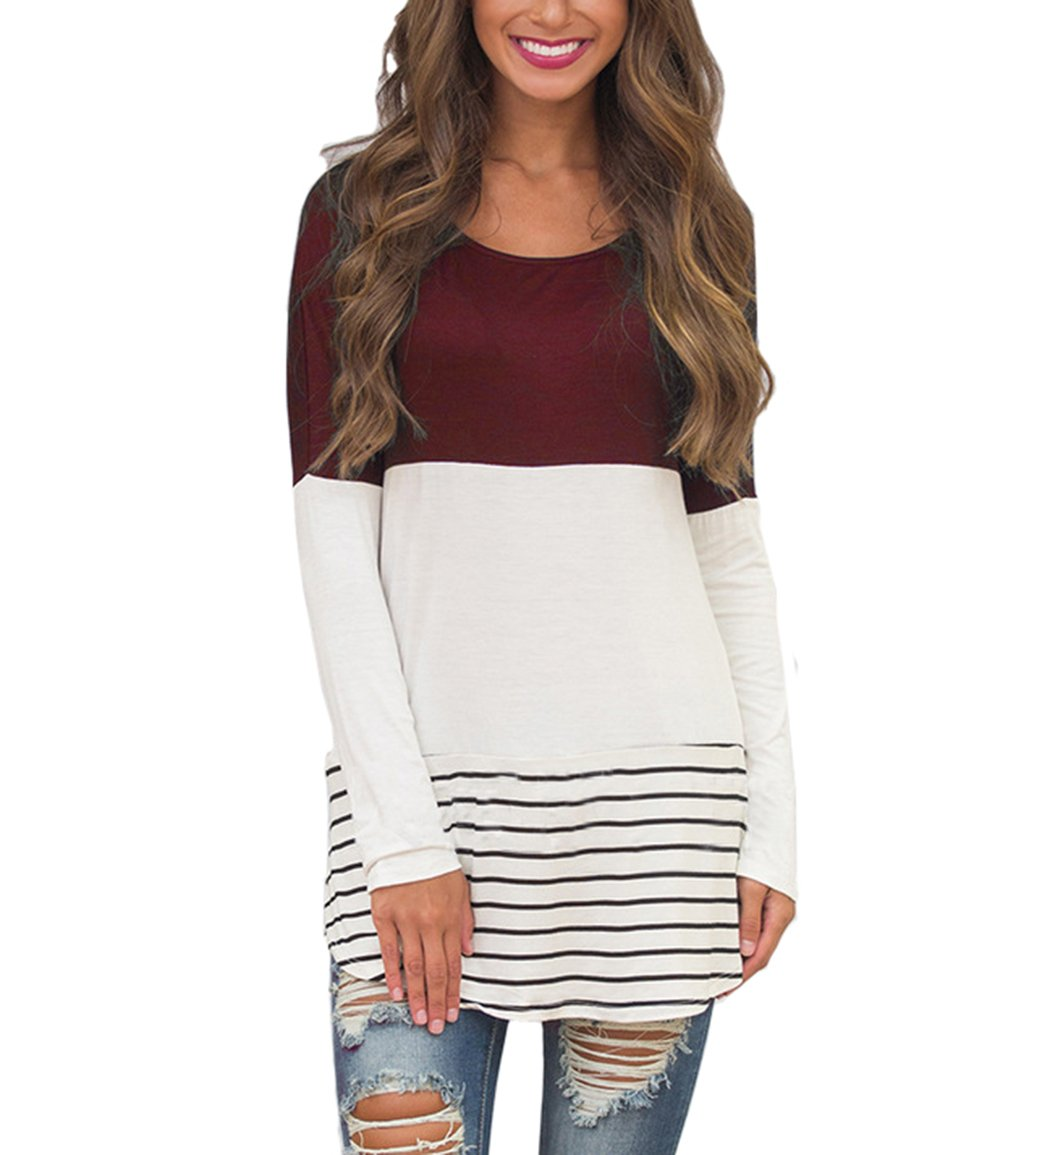 Hount Womens Back Lace Color Block Tunic Tops Long Sleeve T-Shirts Blouses with Striped Hem (Medium, Wine Red)